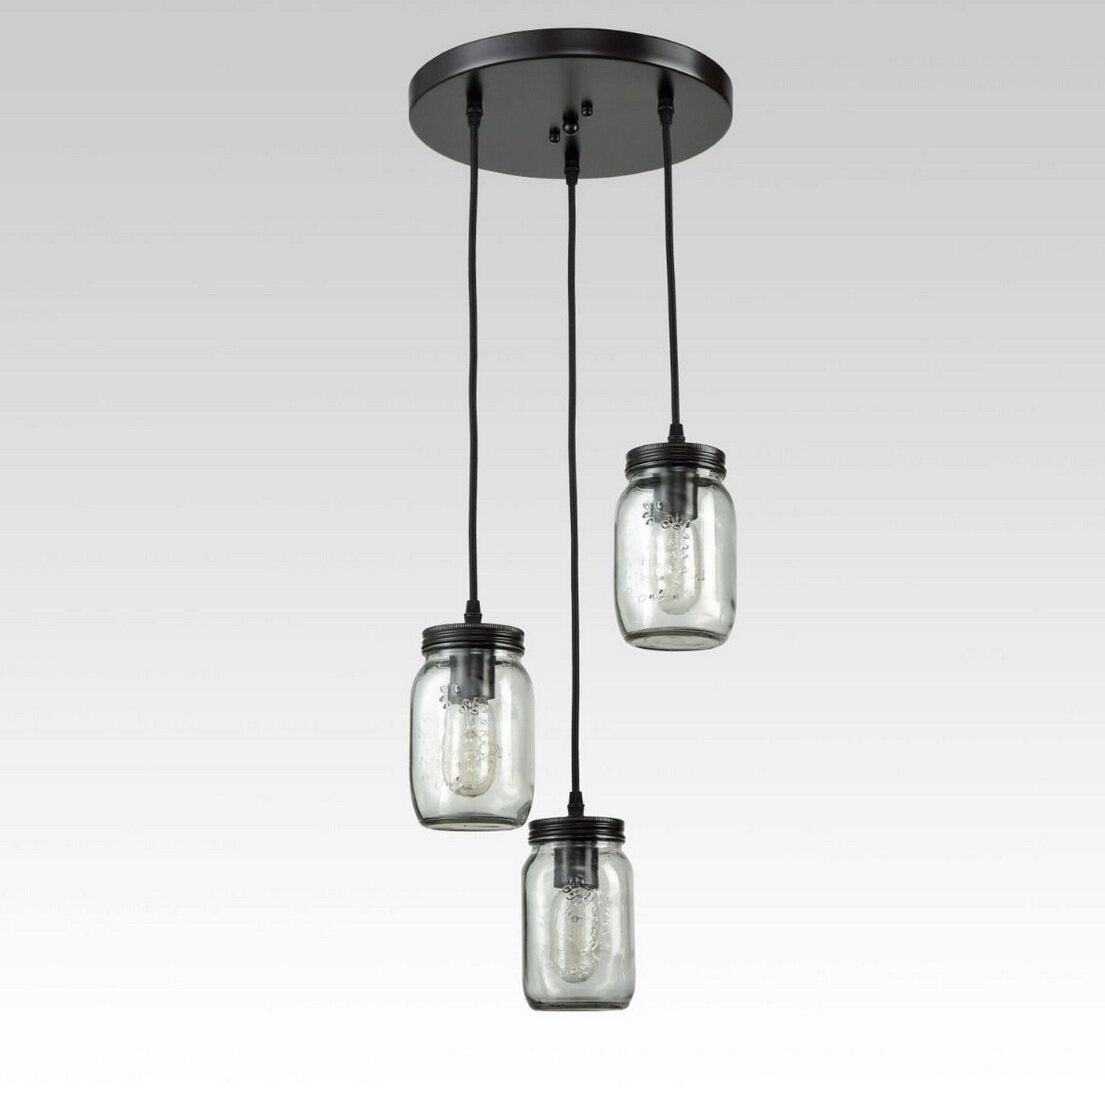 Kastner 3 Light Cluster Pendant Throughout Vernice 3 Light Cluster Bell Pendants (Gallery 24 of 30)